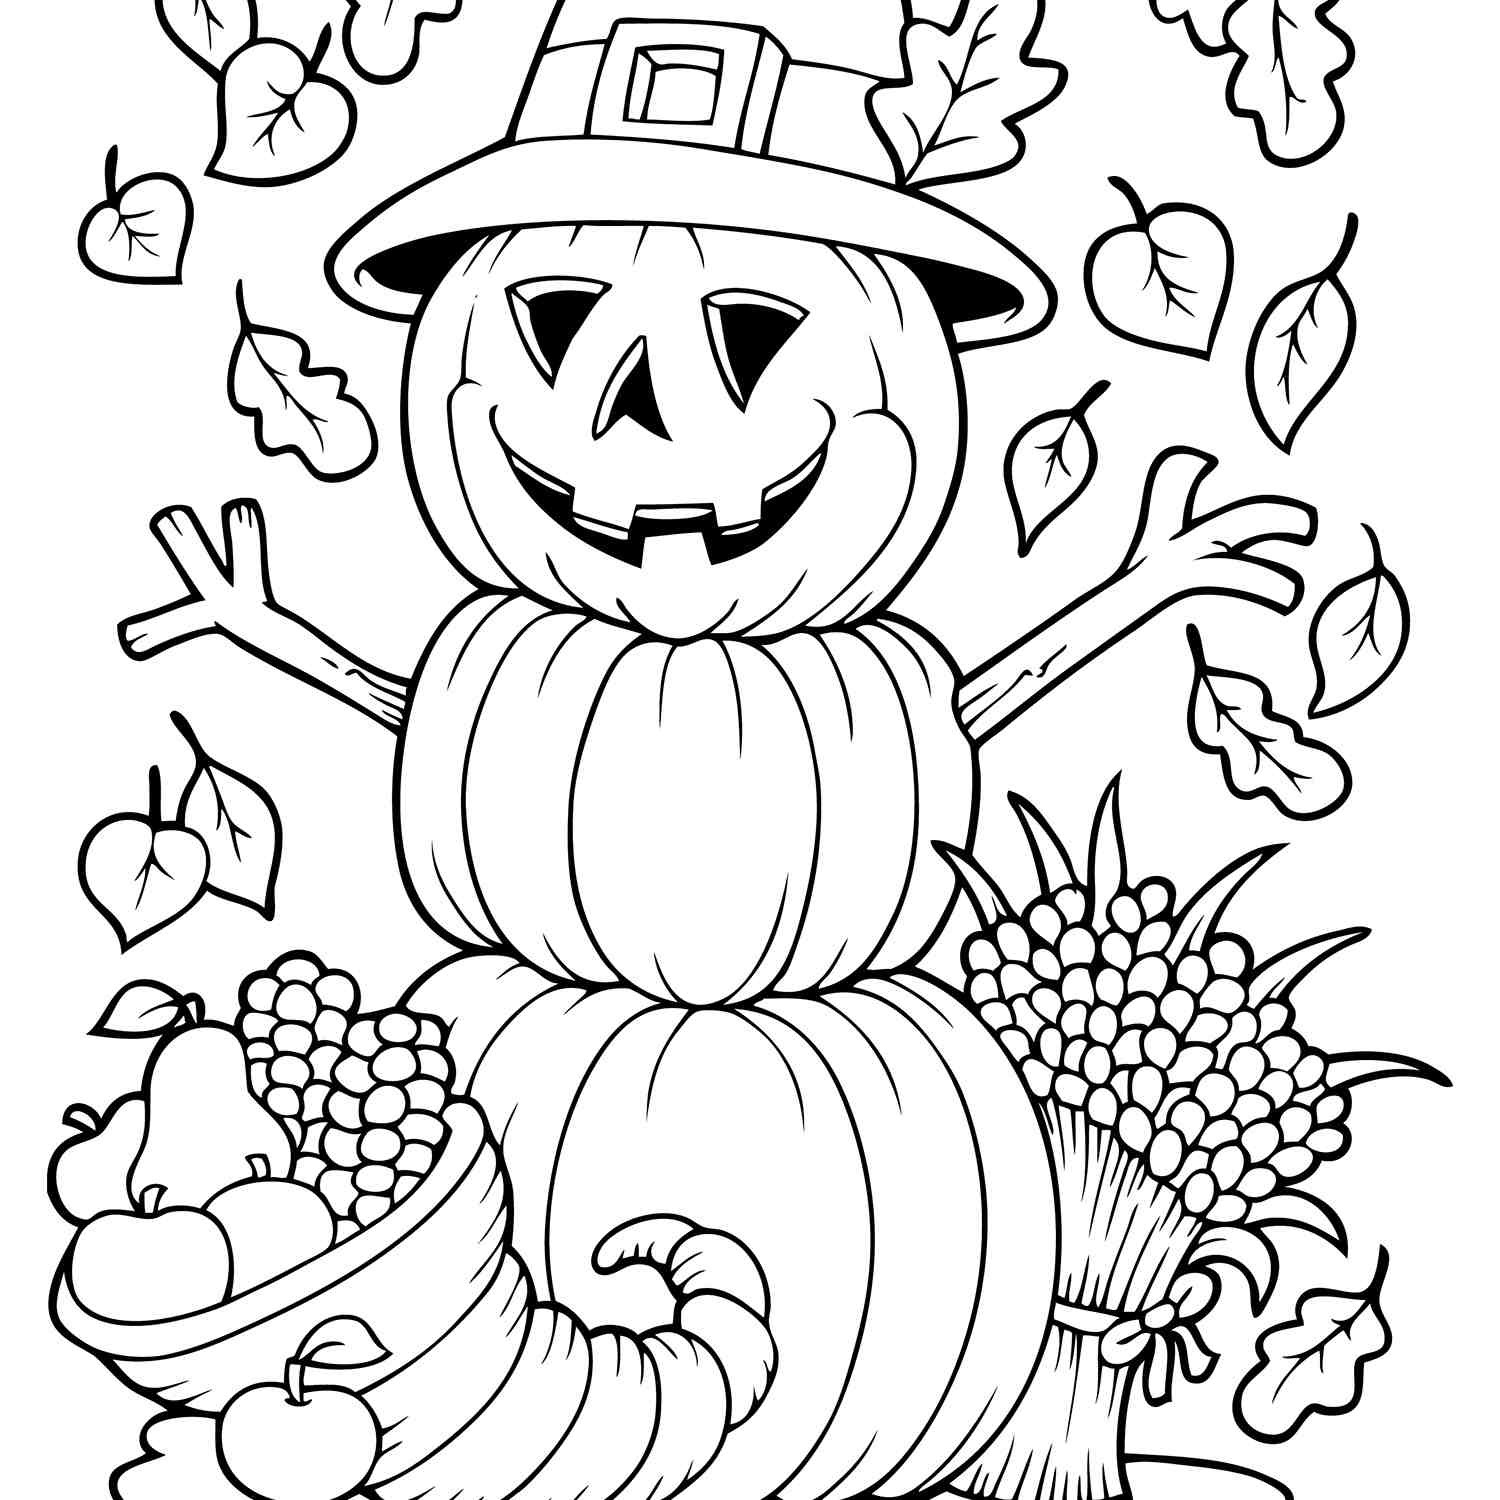 Kids Fall Coloring Pages  19 Places to Find Free Autumn and Fall Coloring Pages